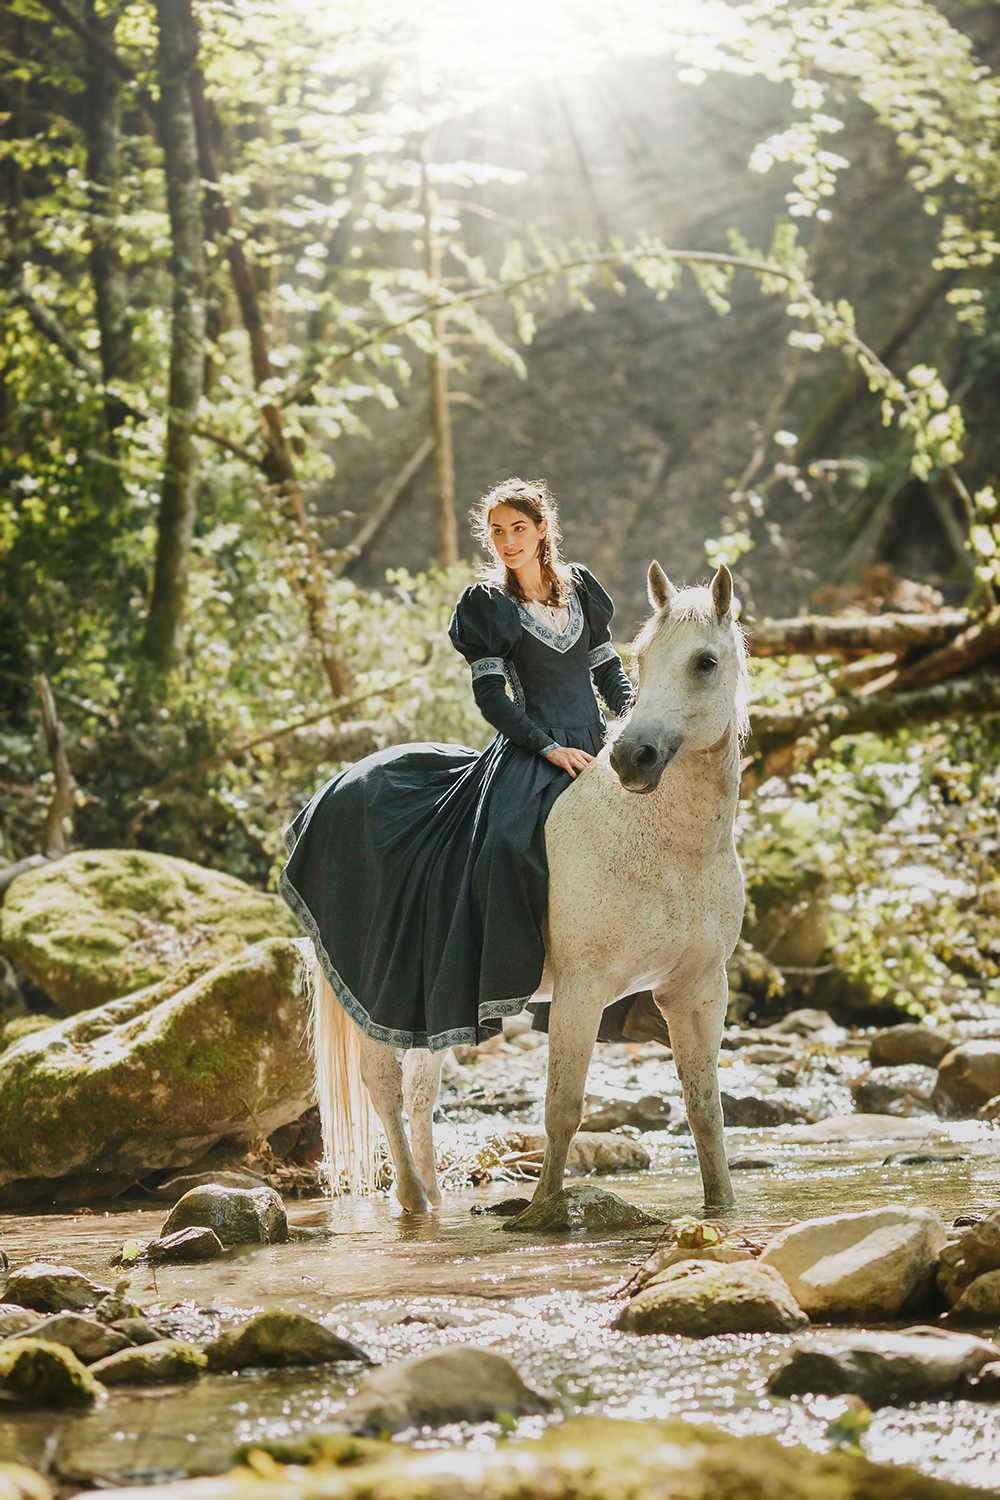 SN1_7651-sophie-narses-photographe-annecy-haute-savoie-book-shooting-portrait-geneve-suisse-famille-animaux-tirages-photo-modele-rhone-alpes-france-animaux-cheval-chien-grossesse-enfant-famille